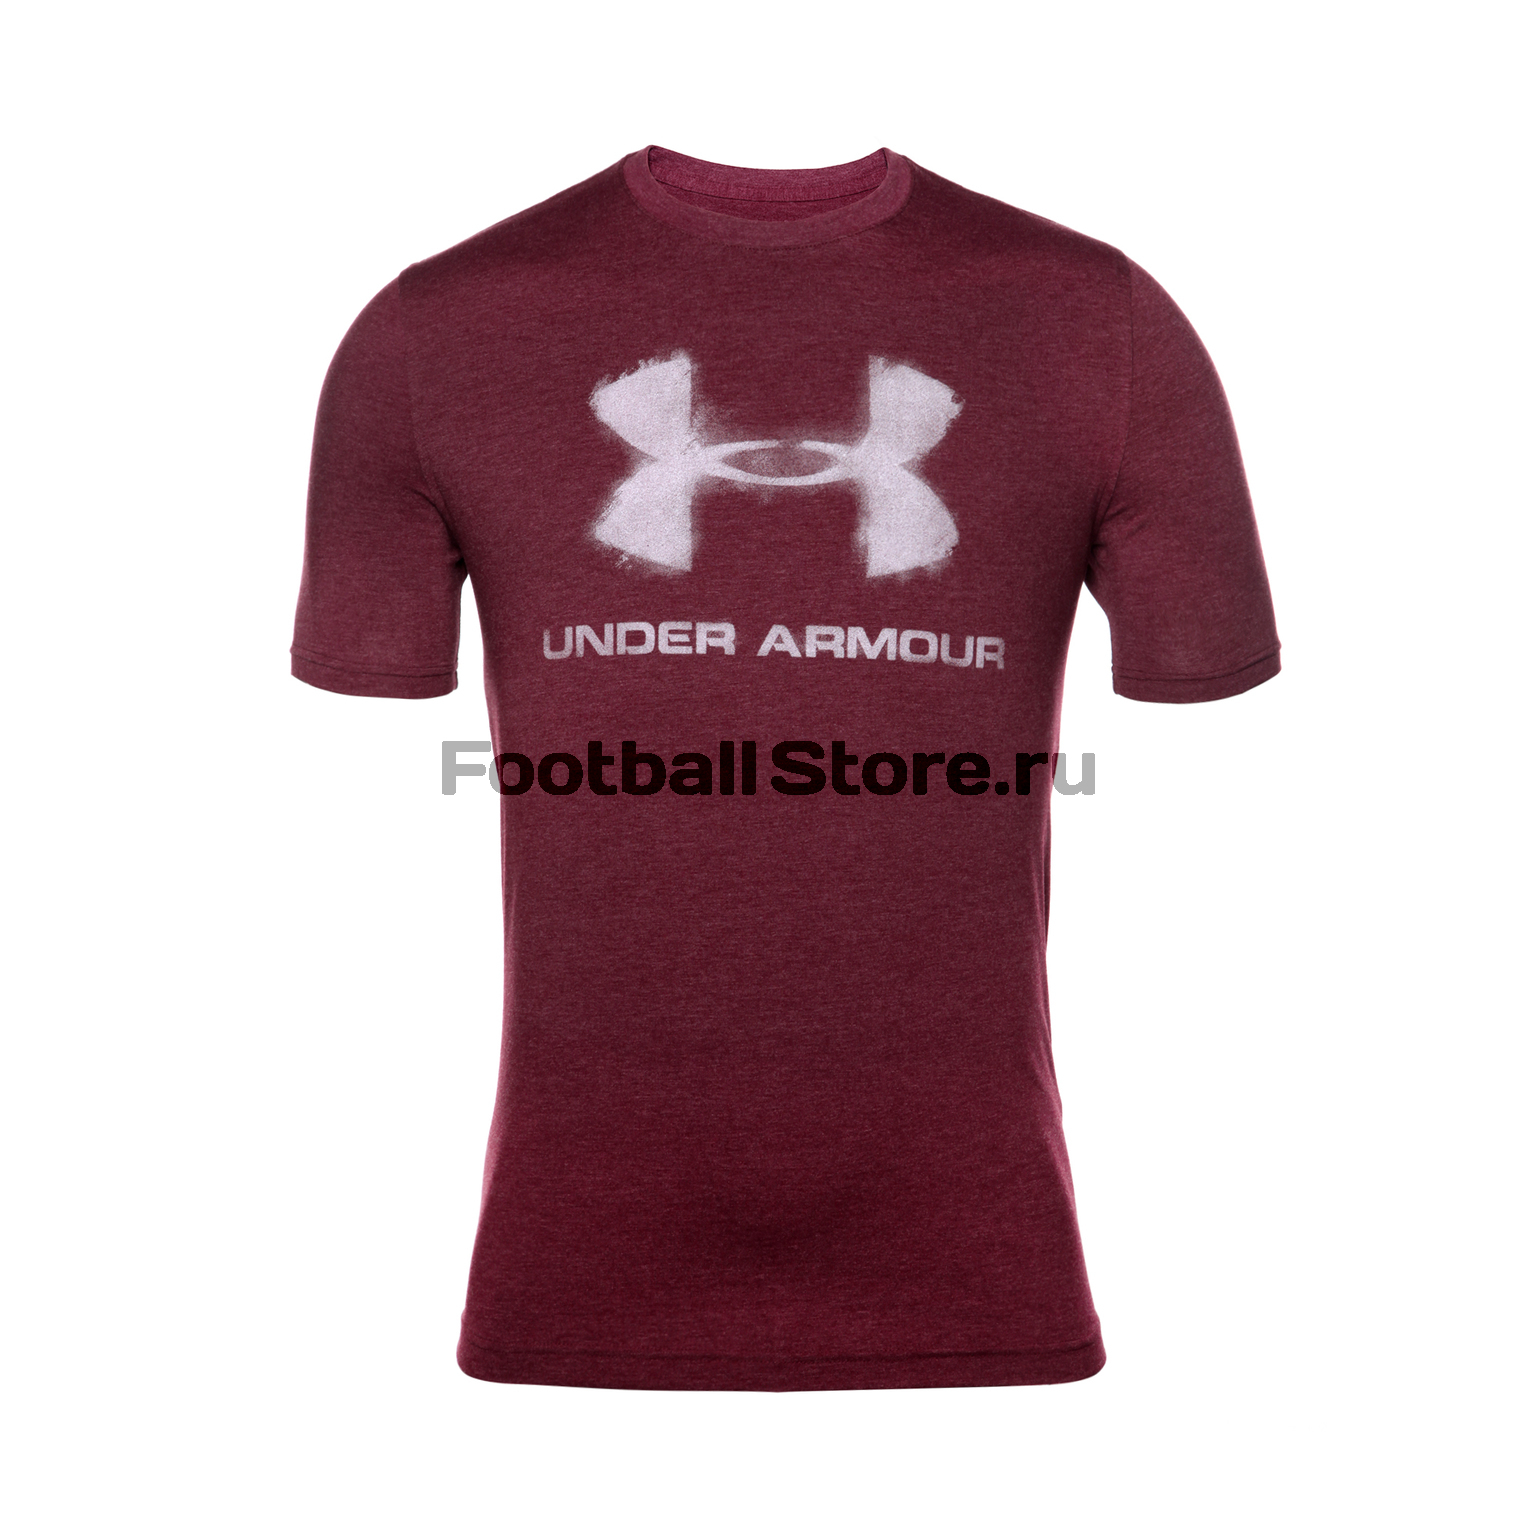 Футболки Under Armour Футболка Under Armour Chalked Sportstyle Logo SS 1289891-609